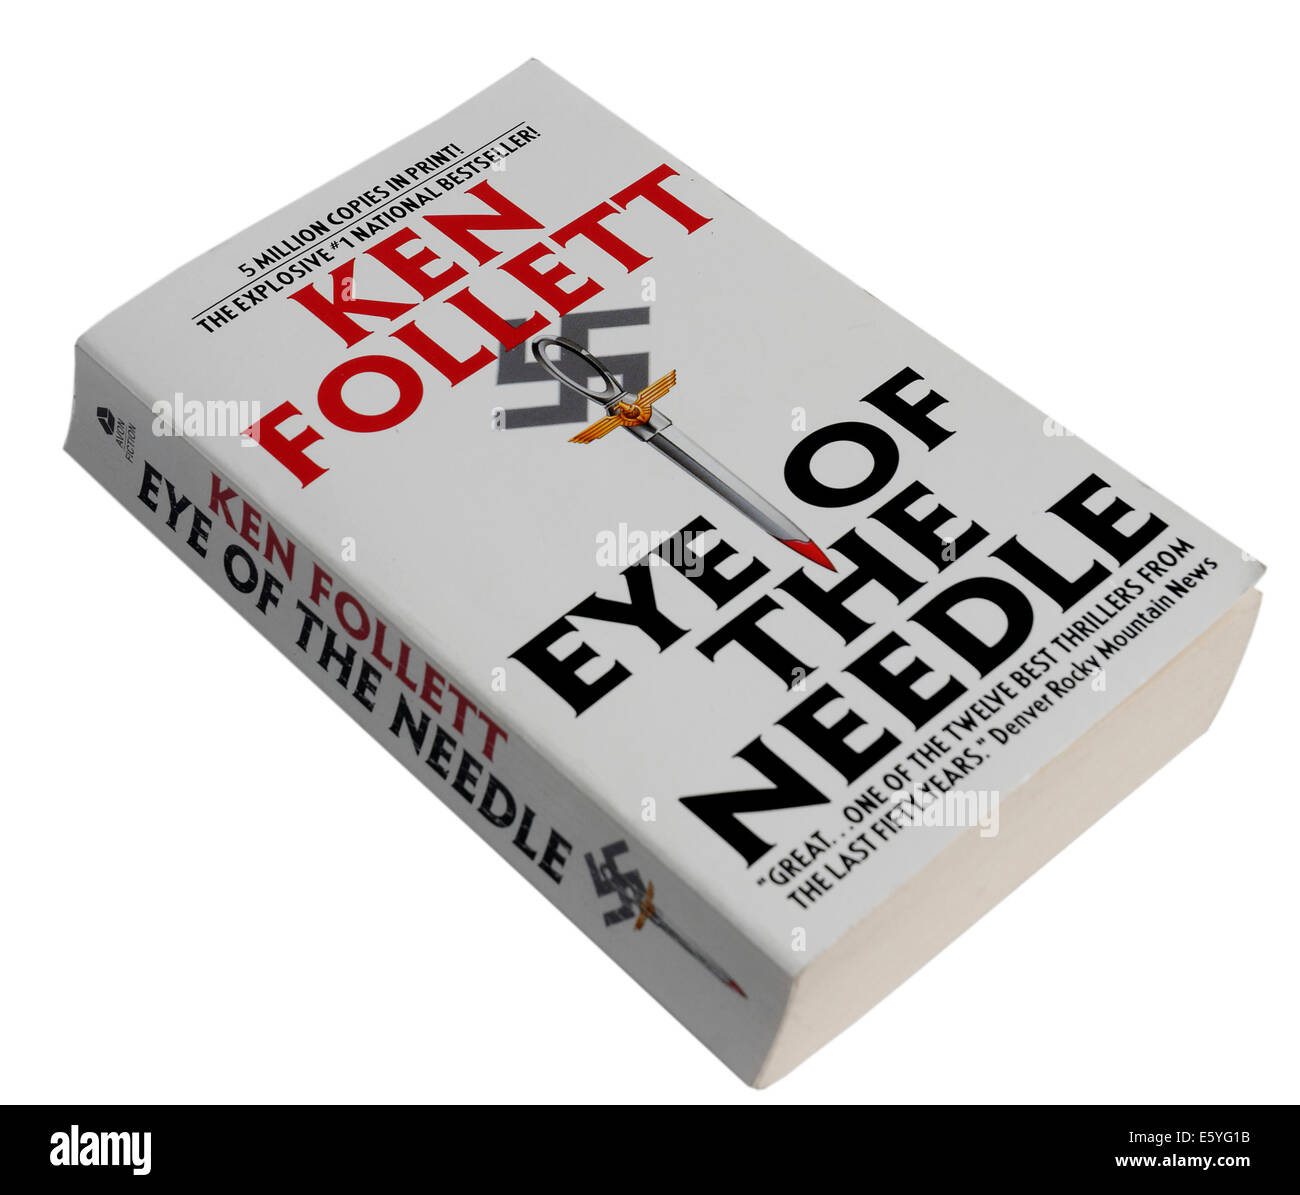 The Eye of the Needle by Ken Follett - Stock Image